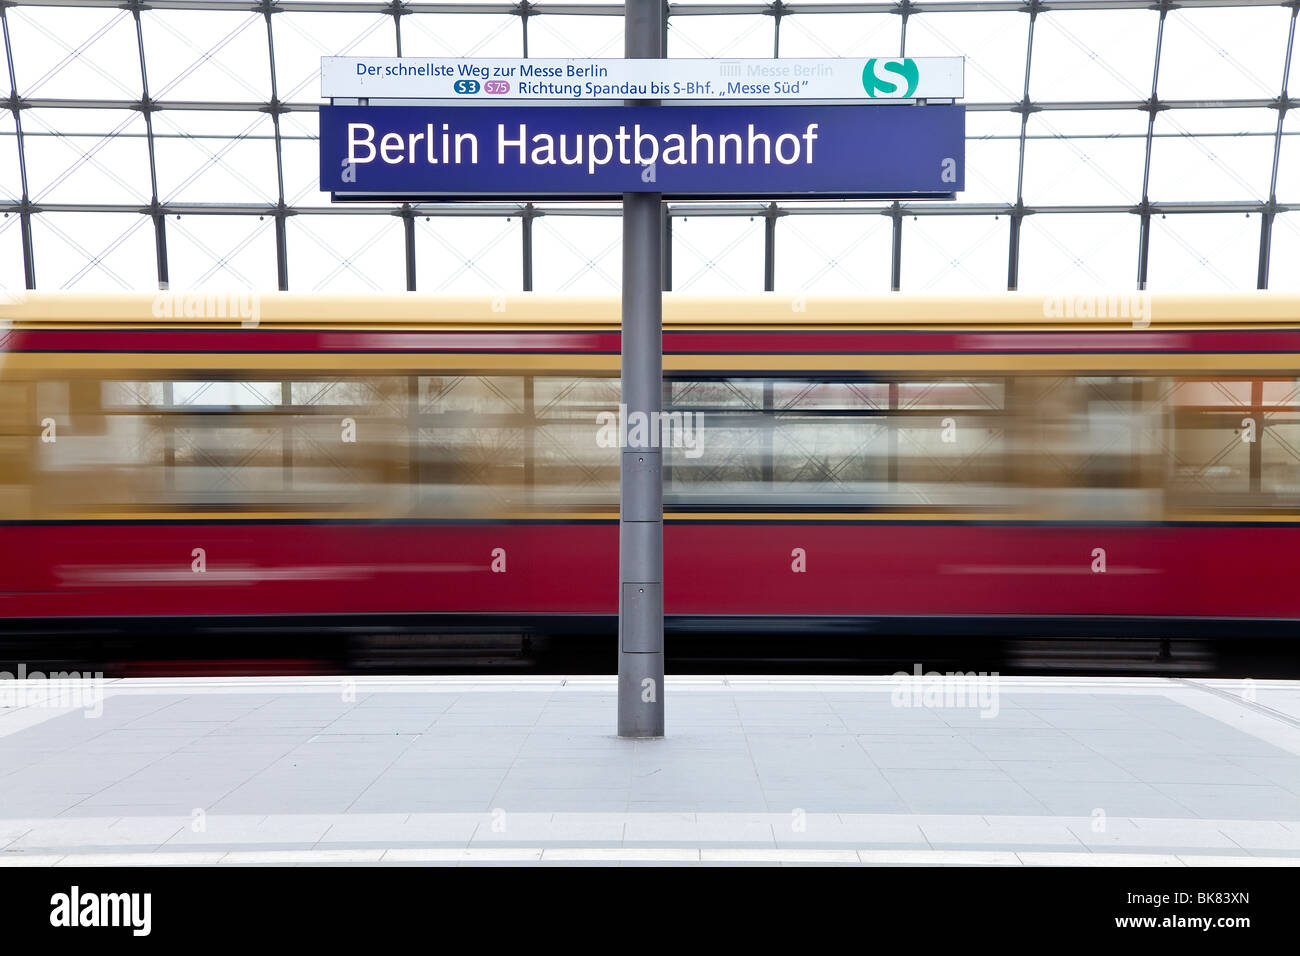 Europe, Germany, Berlin, new modern main railway station - train pulling into the platform - Stock Image